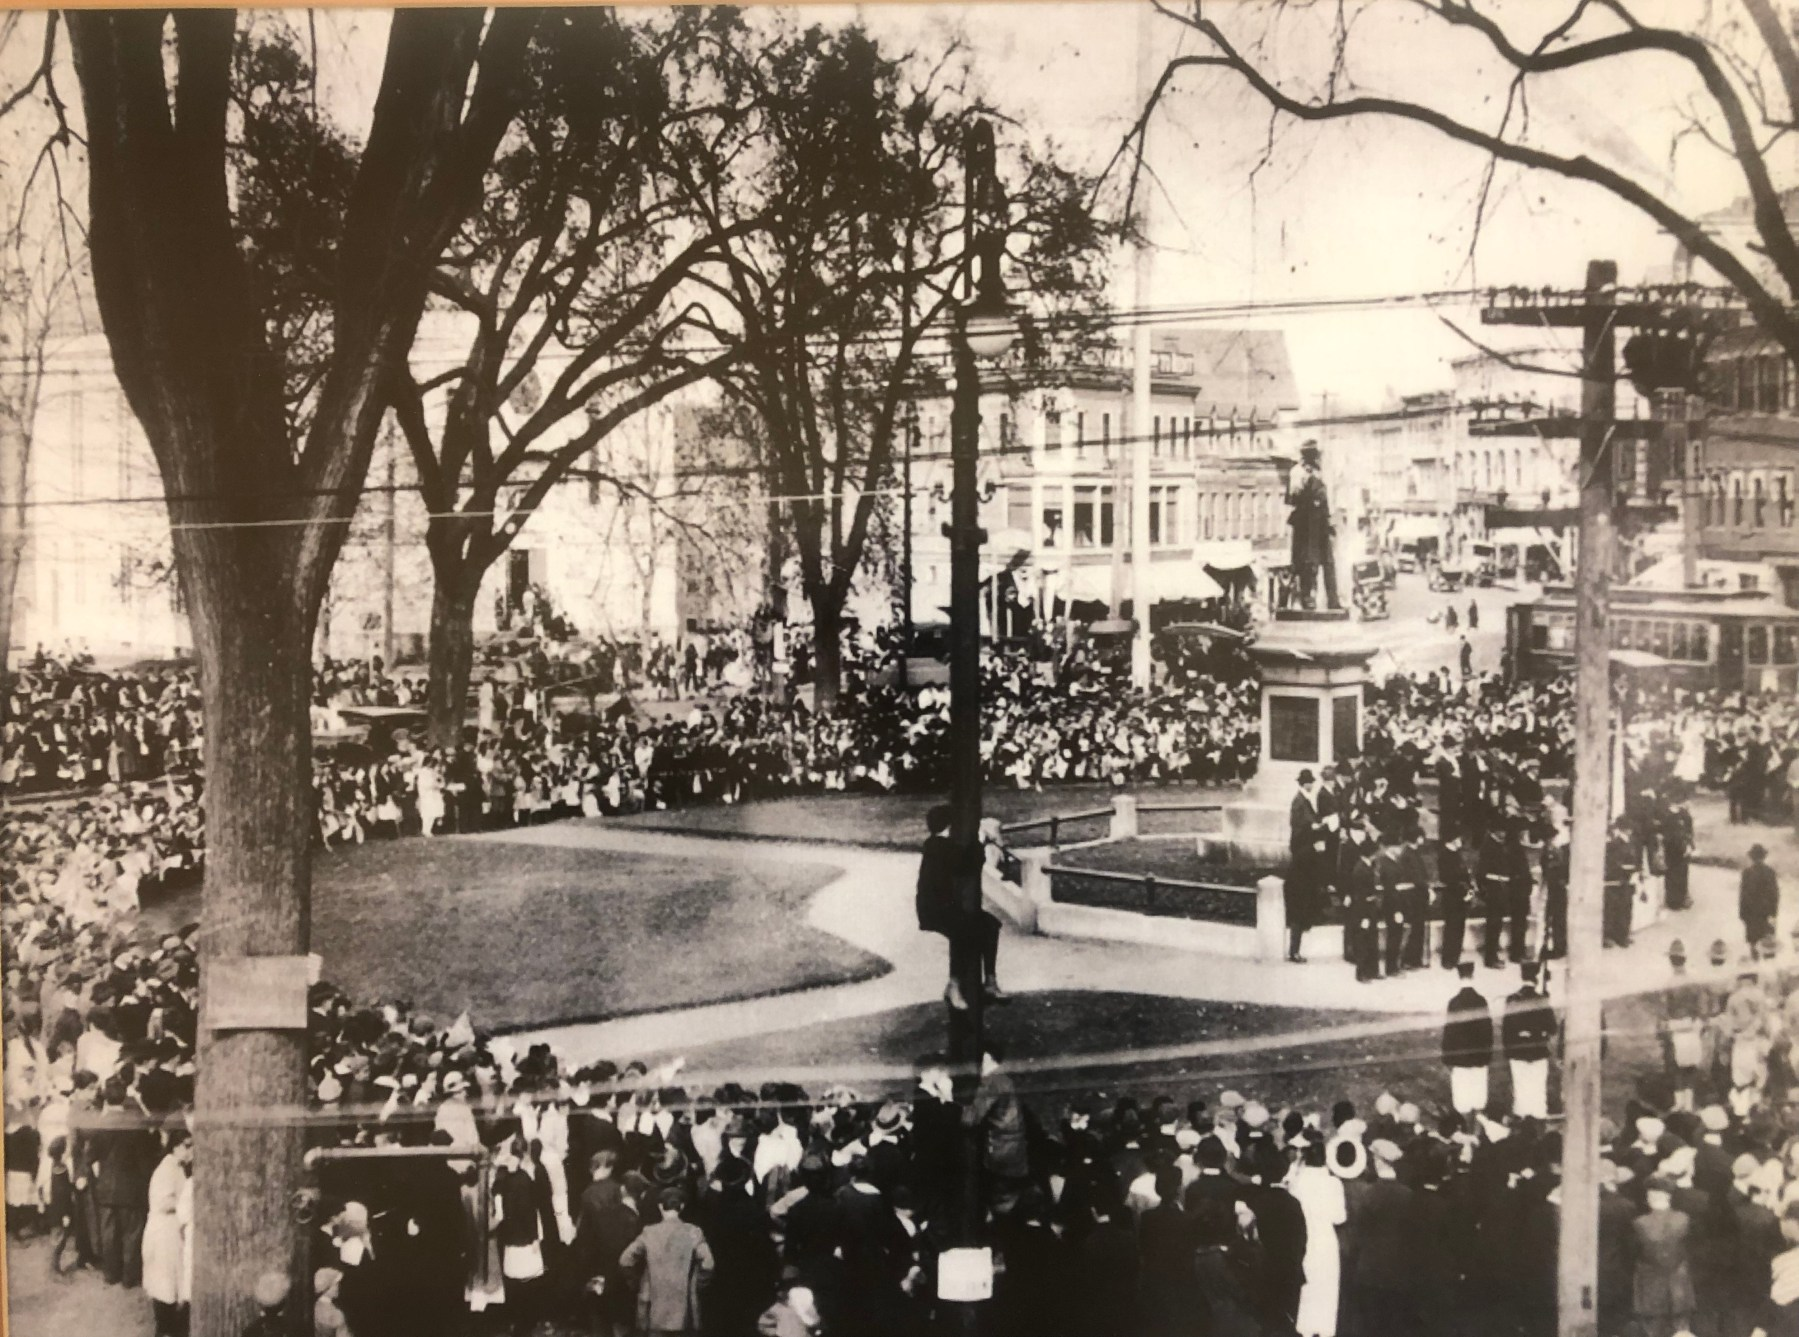 Homecoming of Woburn Company G, Oct. 21, 1919